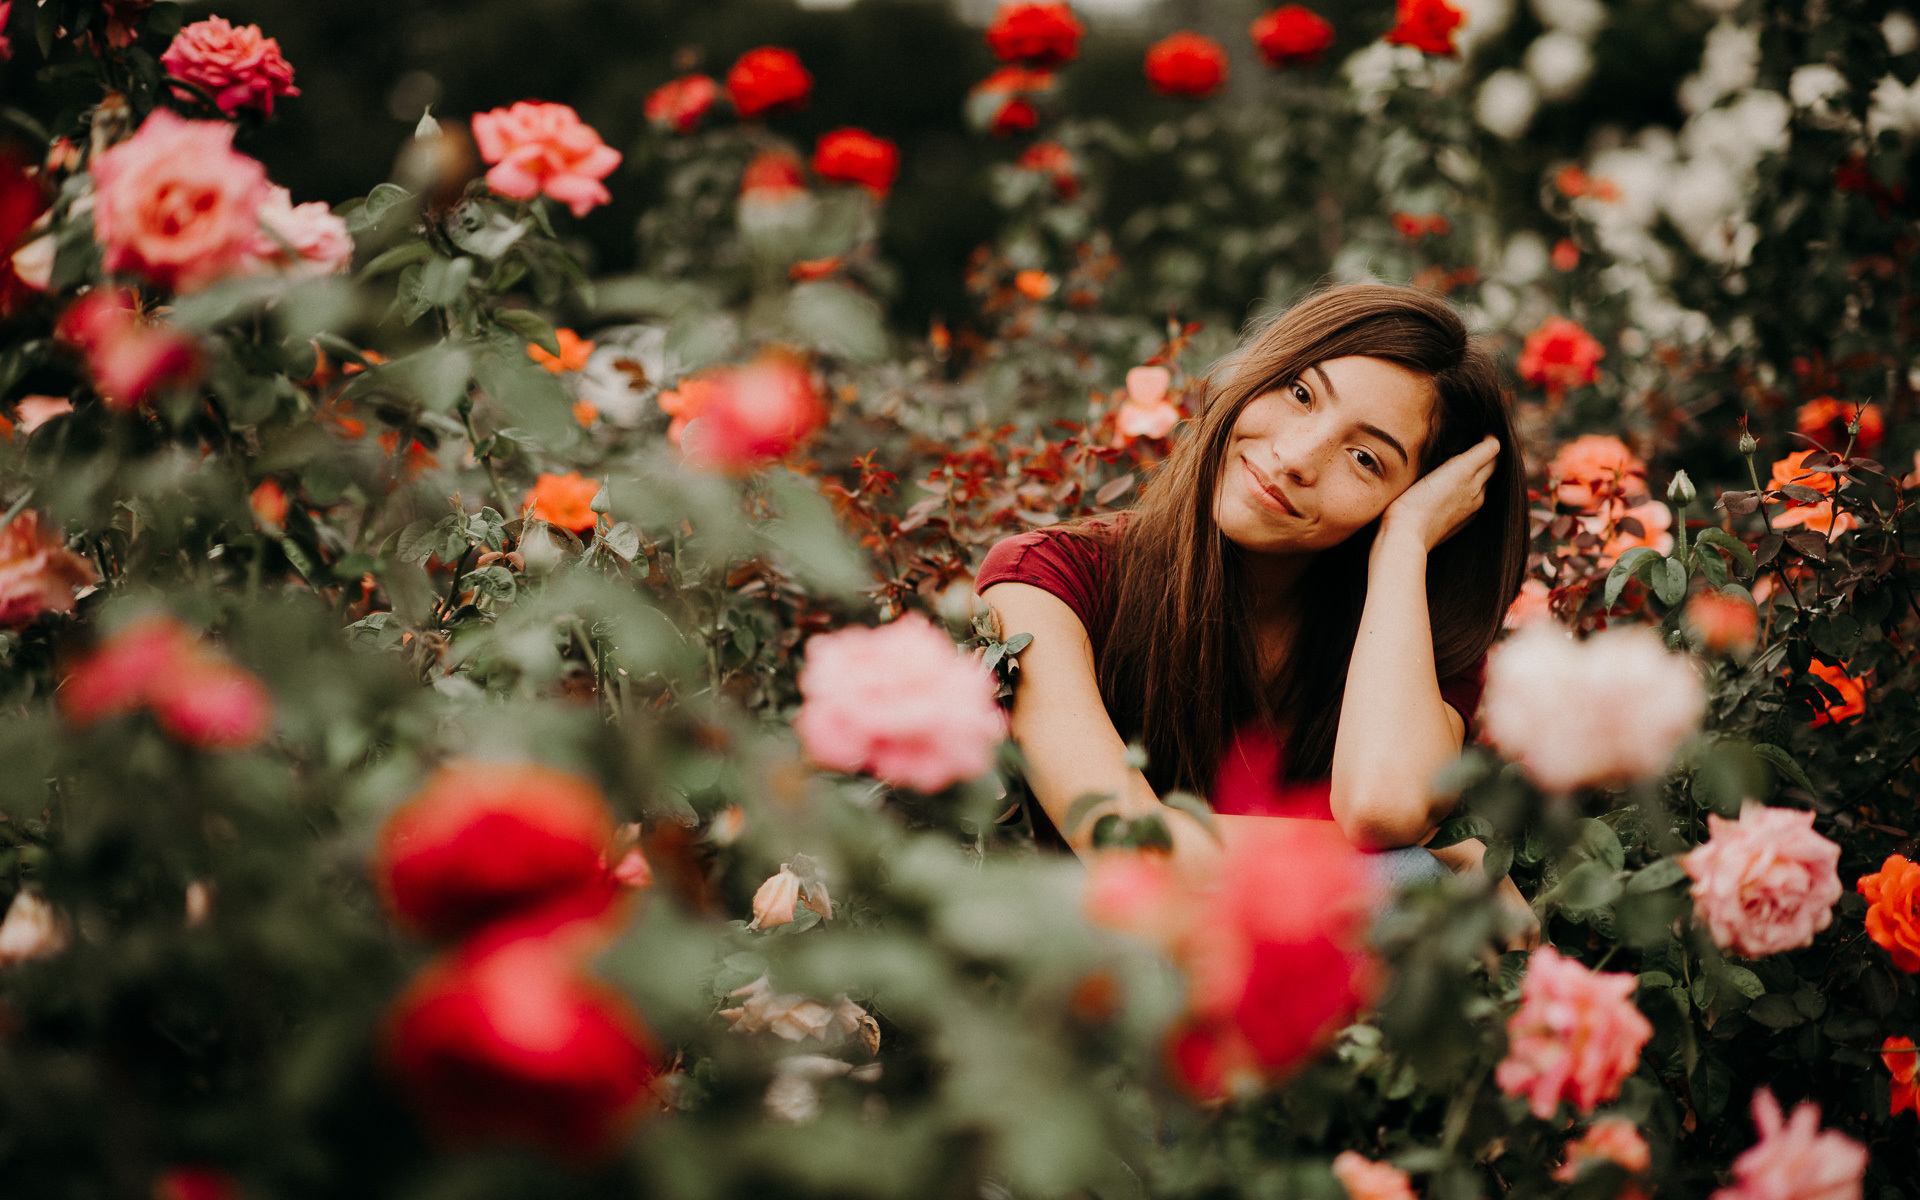 rose garden senior portraits lincoln nebraska